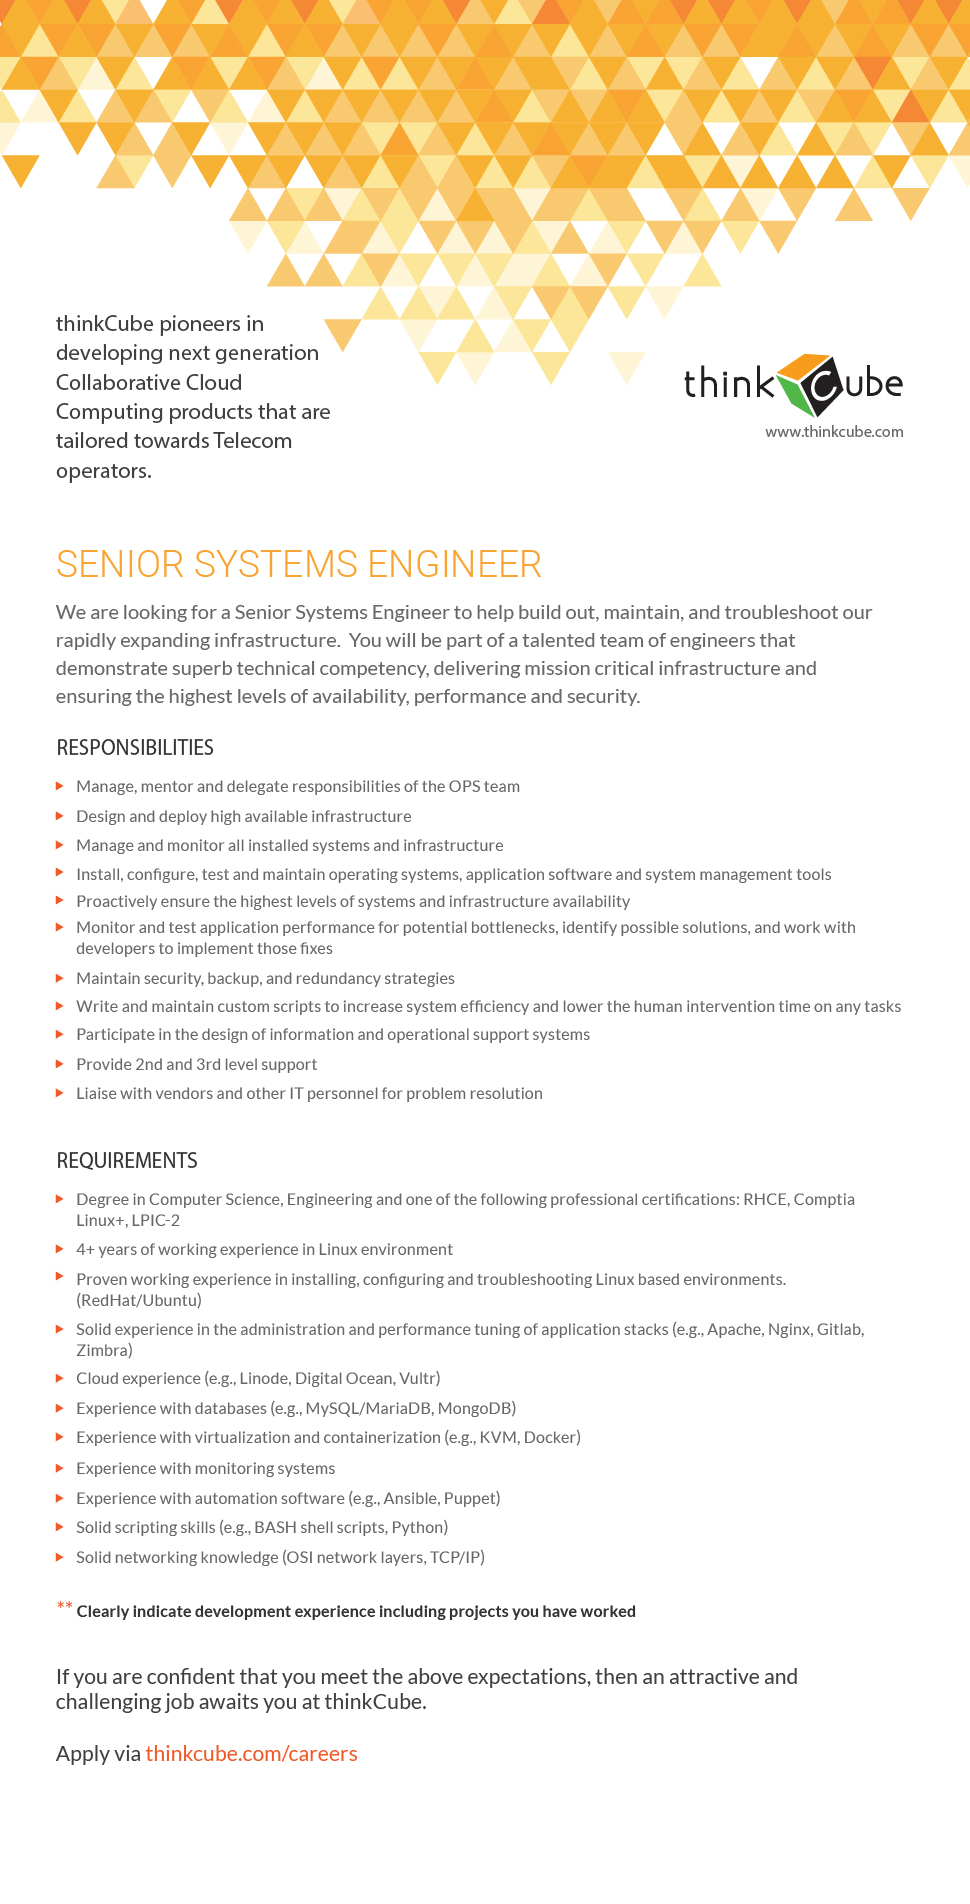 SENIOR SYSTEMS ENGINEER